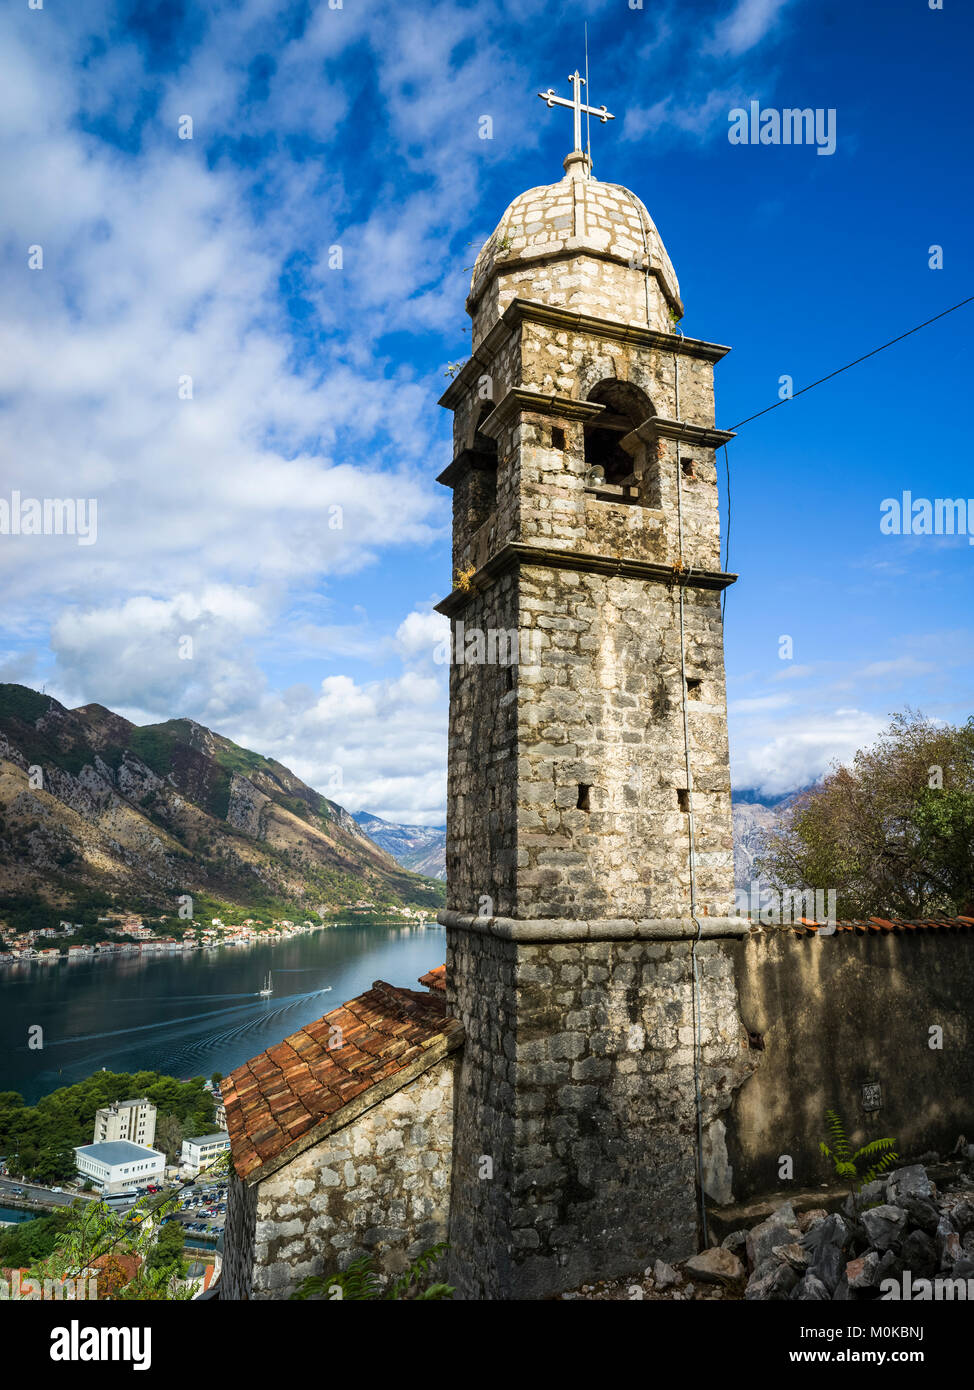 A stone tower with cross at Kotor Fortress and a view of the Gulf of Kotor; Kotor, Montenegro - Stock Image